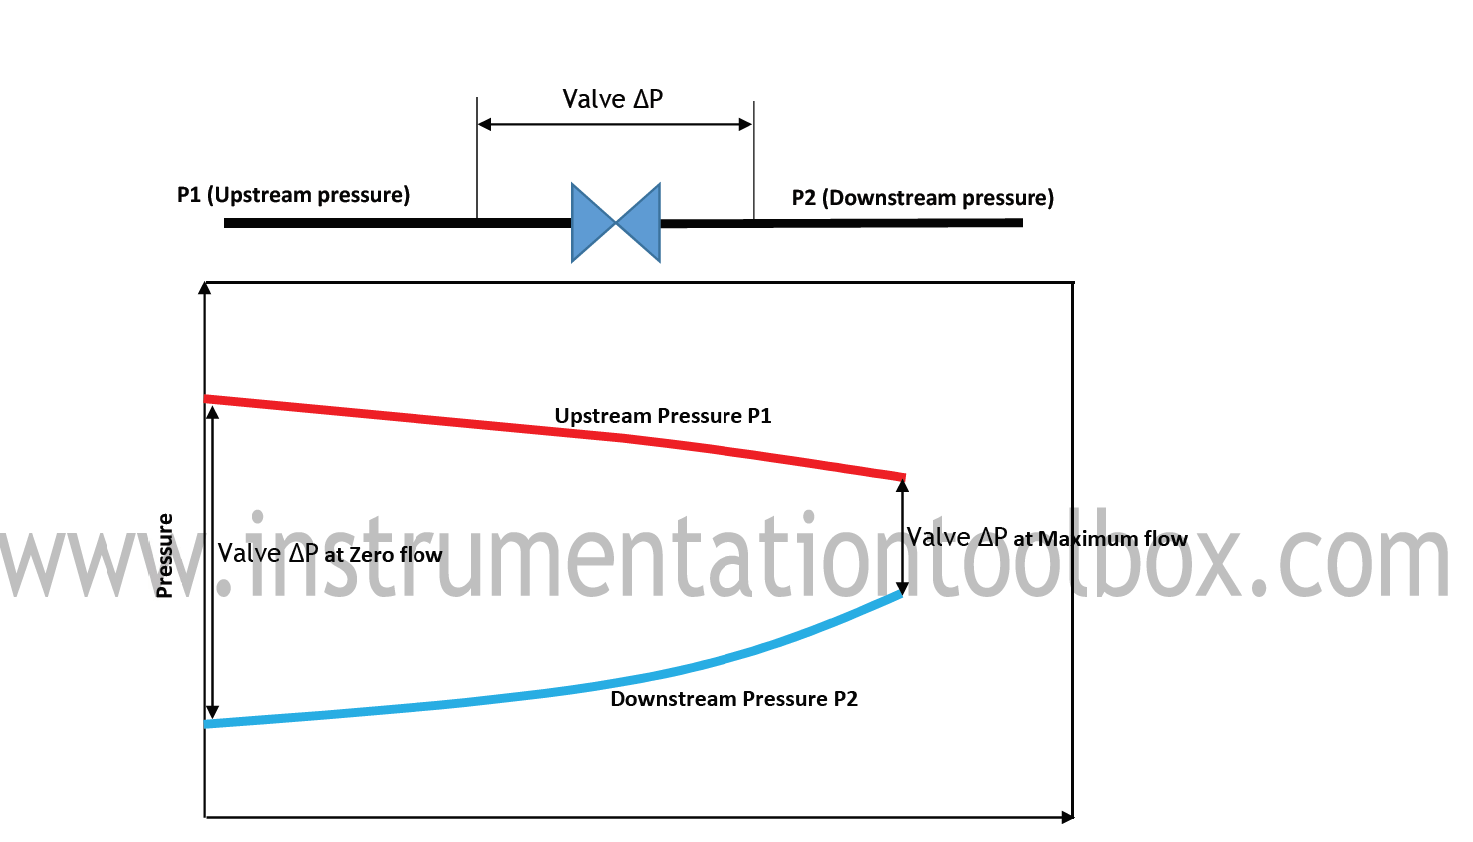 hight resolution of as flow decreases the pressure drop across the valve increases commensurately these variations are illustrated in the diagram below